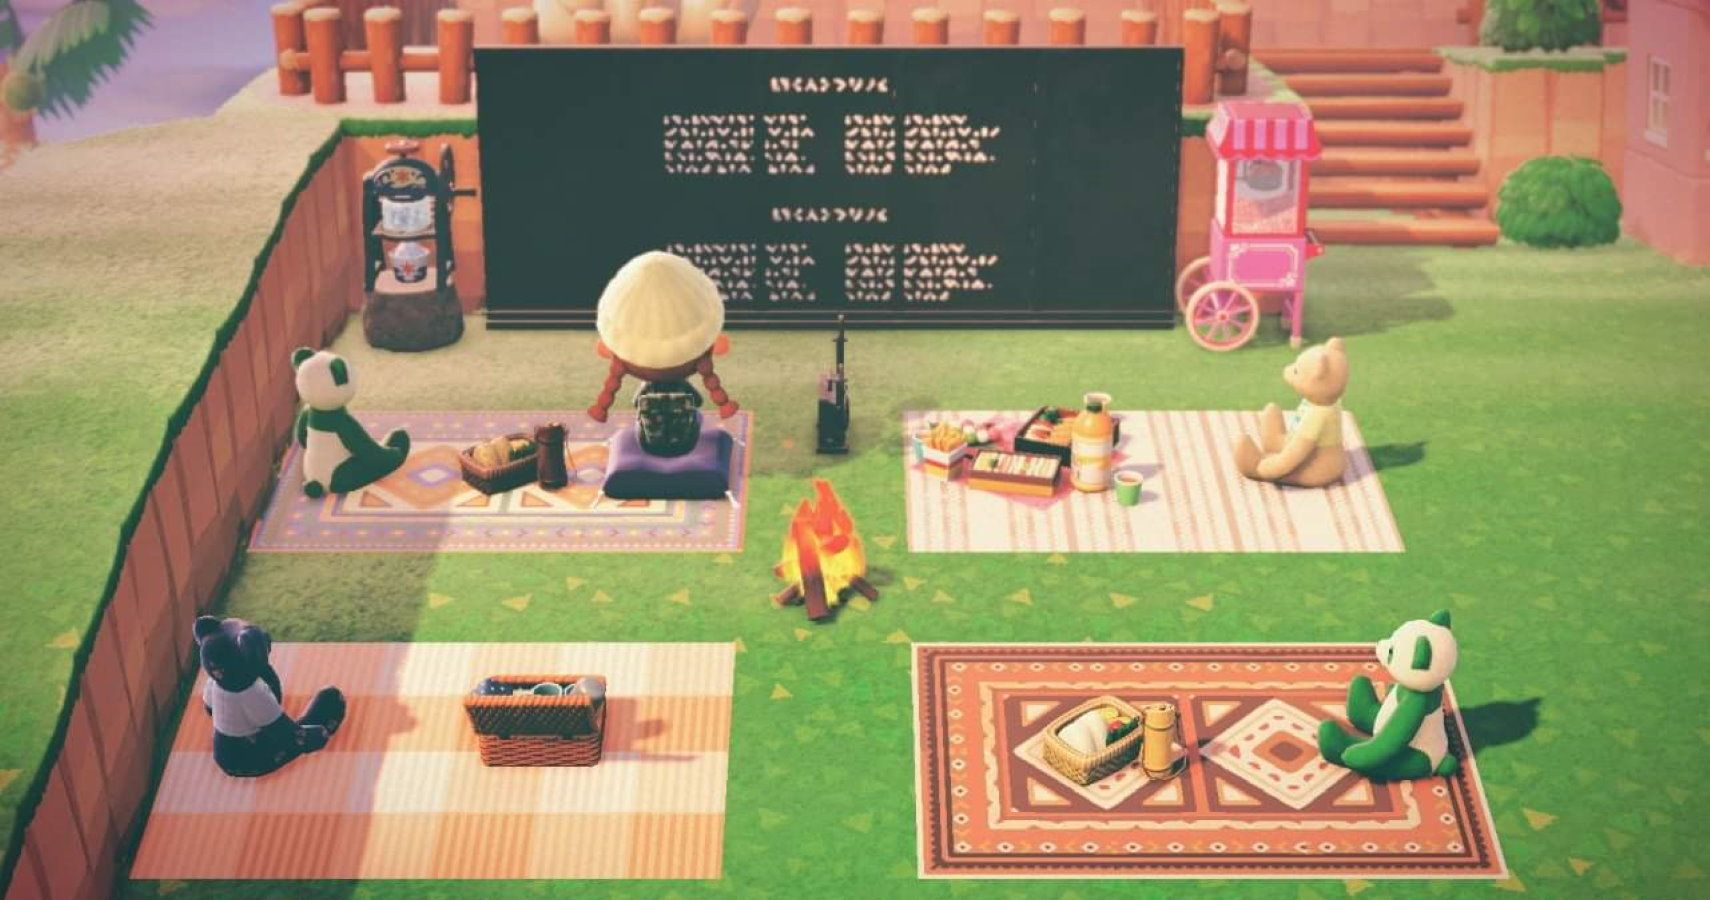 Animal Crossing New Horizons Player Creates Cozy Outdoor Theater